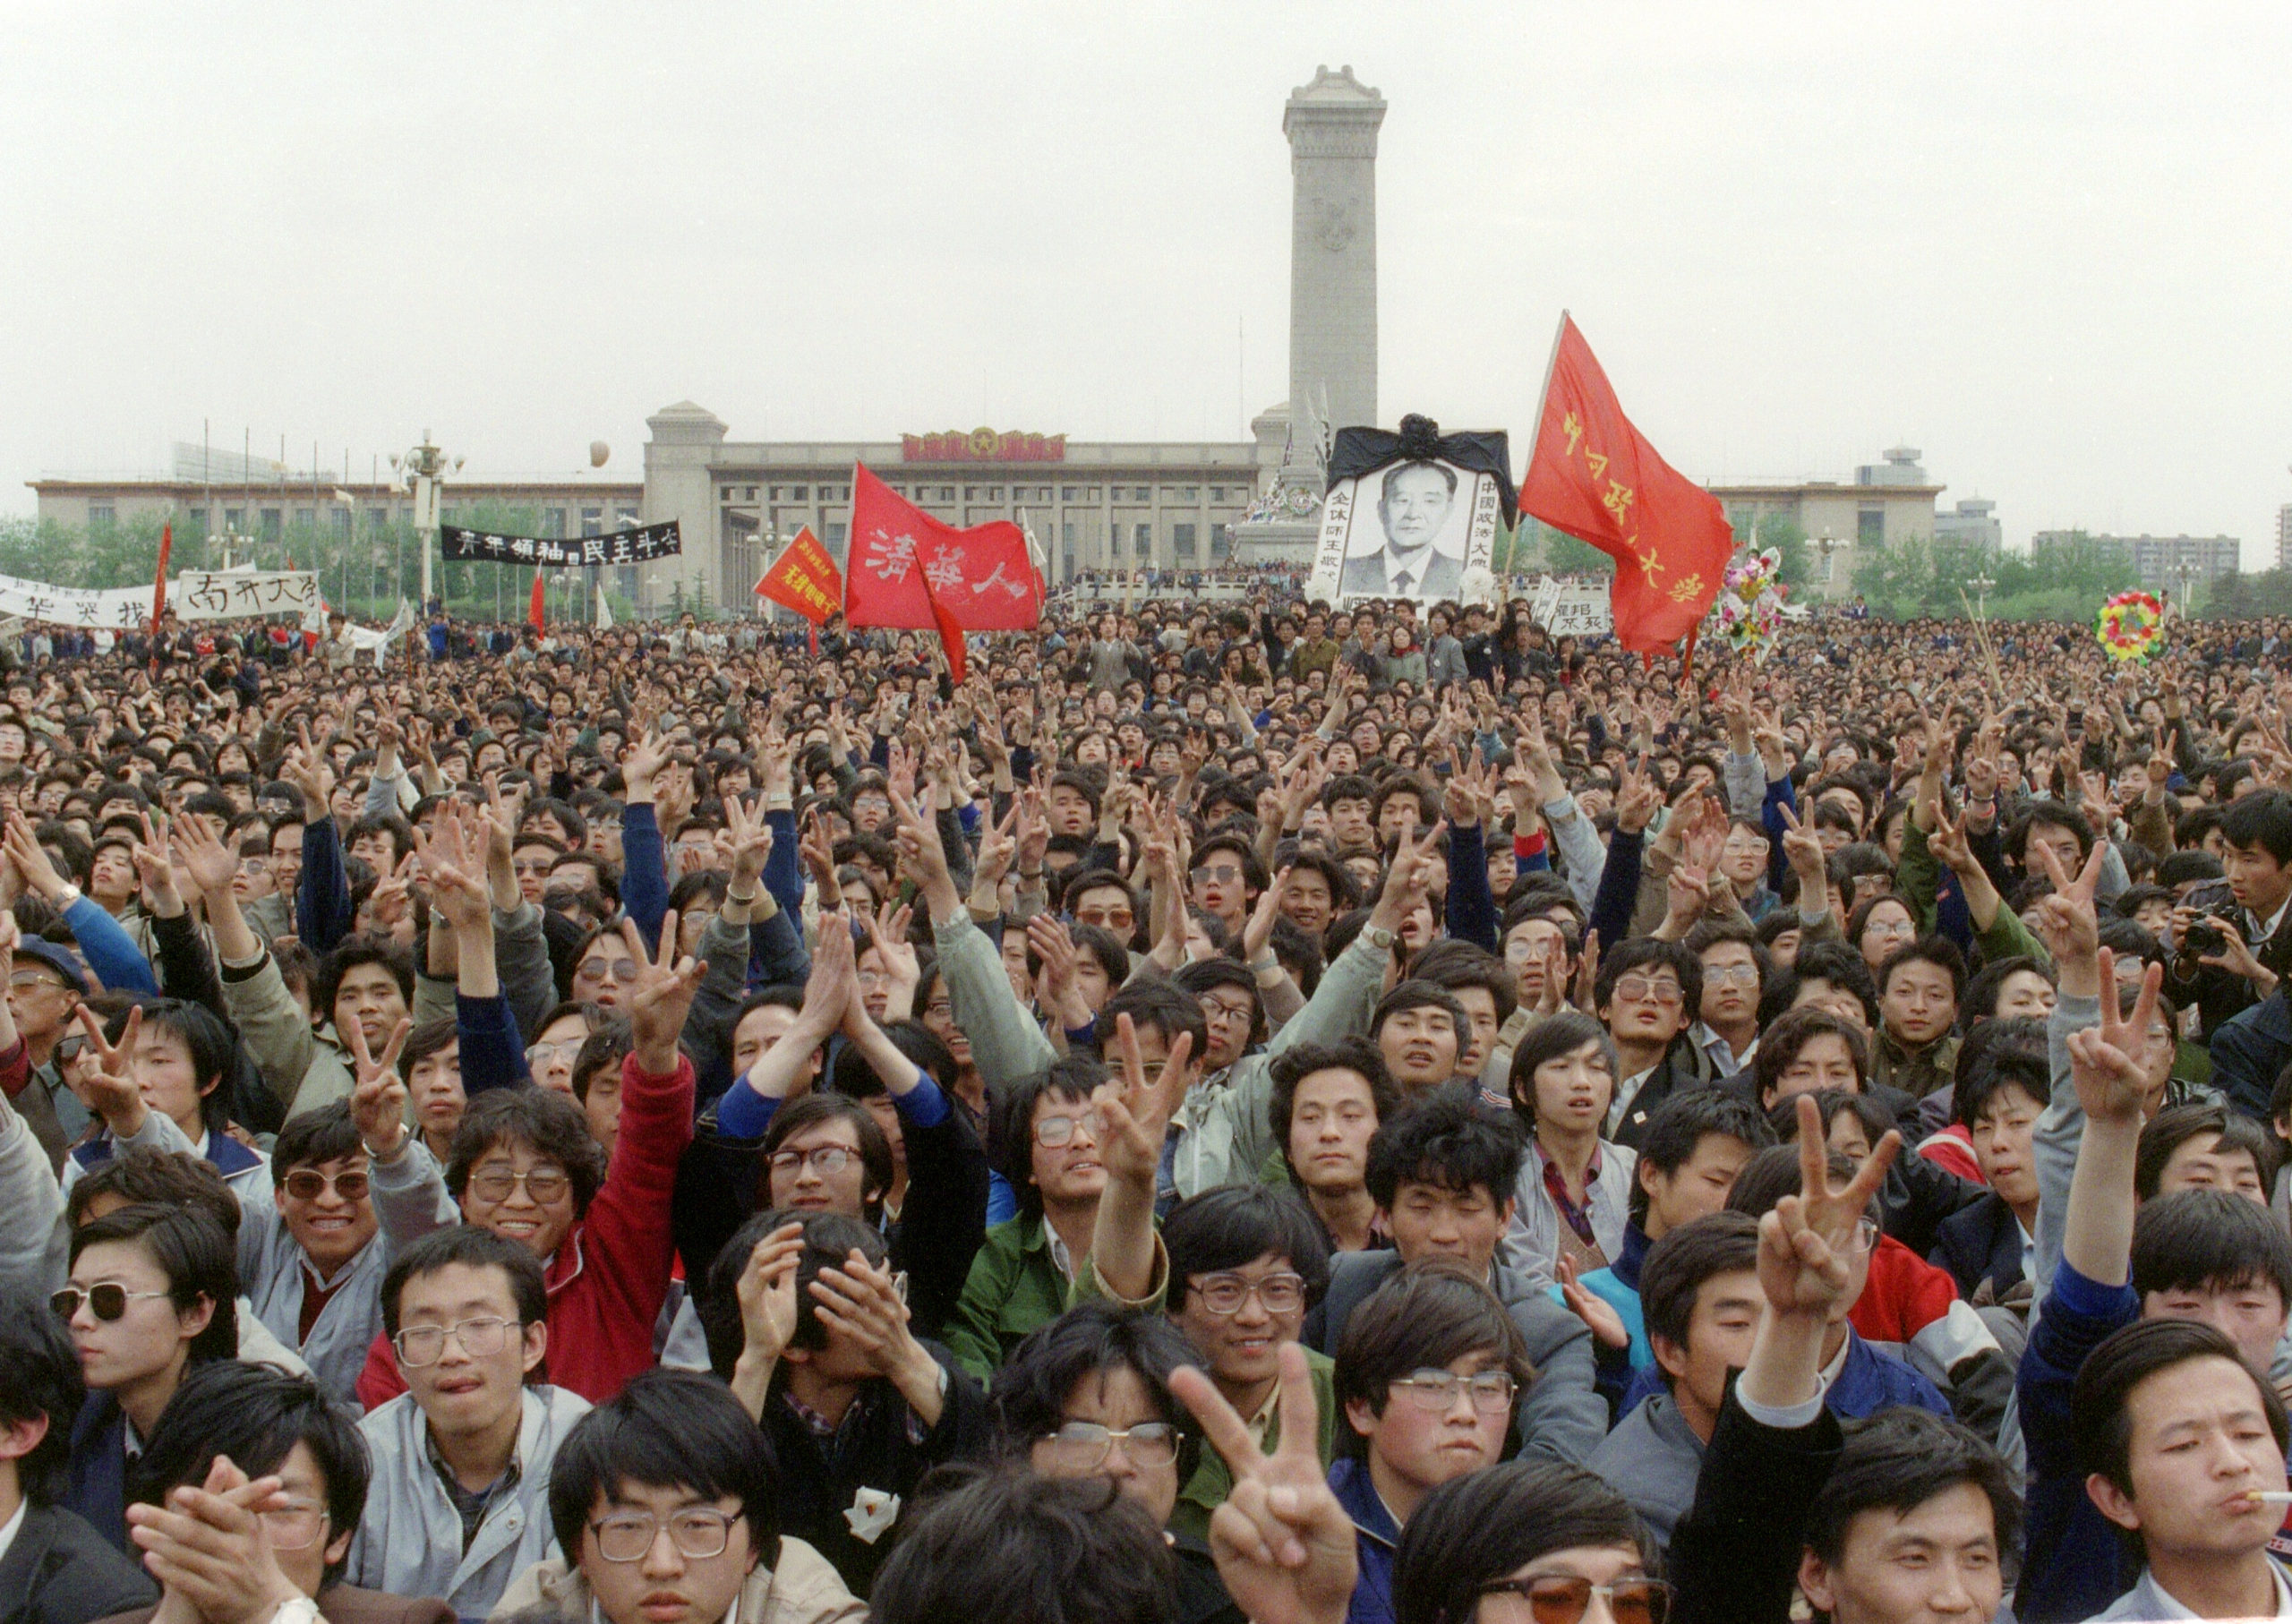 Students gesture and shout slogans during the 1989 protest in Tiananmen Square in Beijing, China. (Catherine Henriette/AFP via Getty Images)